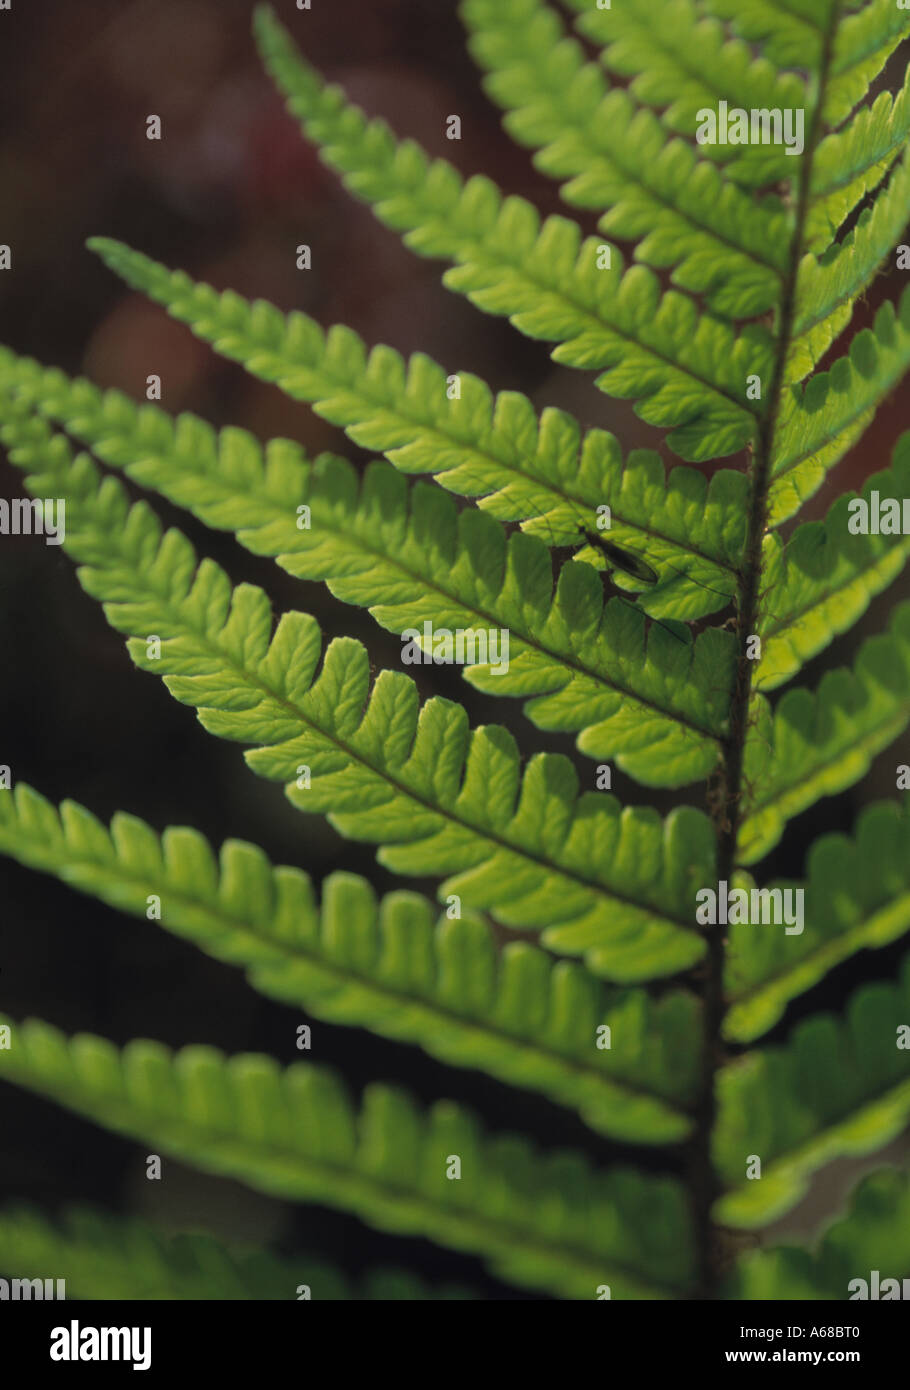 fern leaves growing in irish country garden, - Stock Image